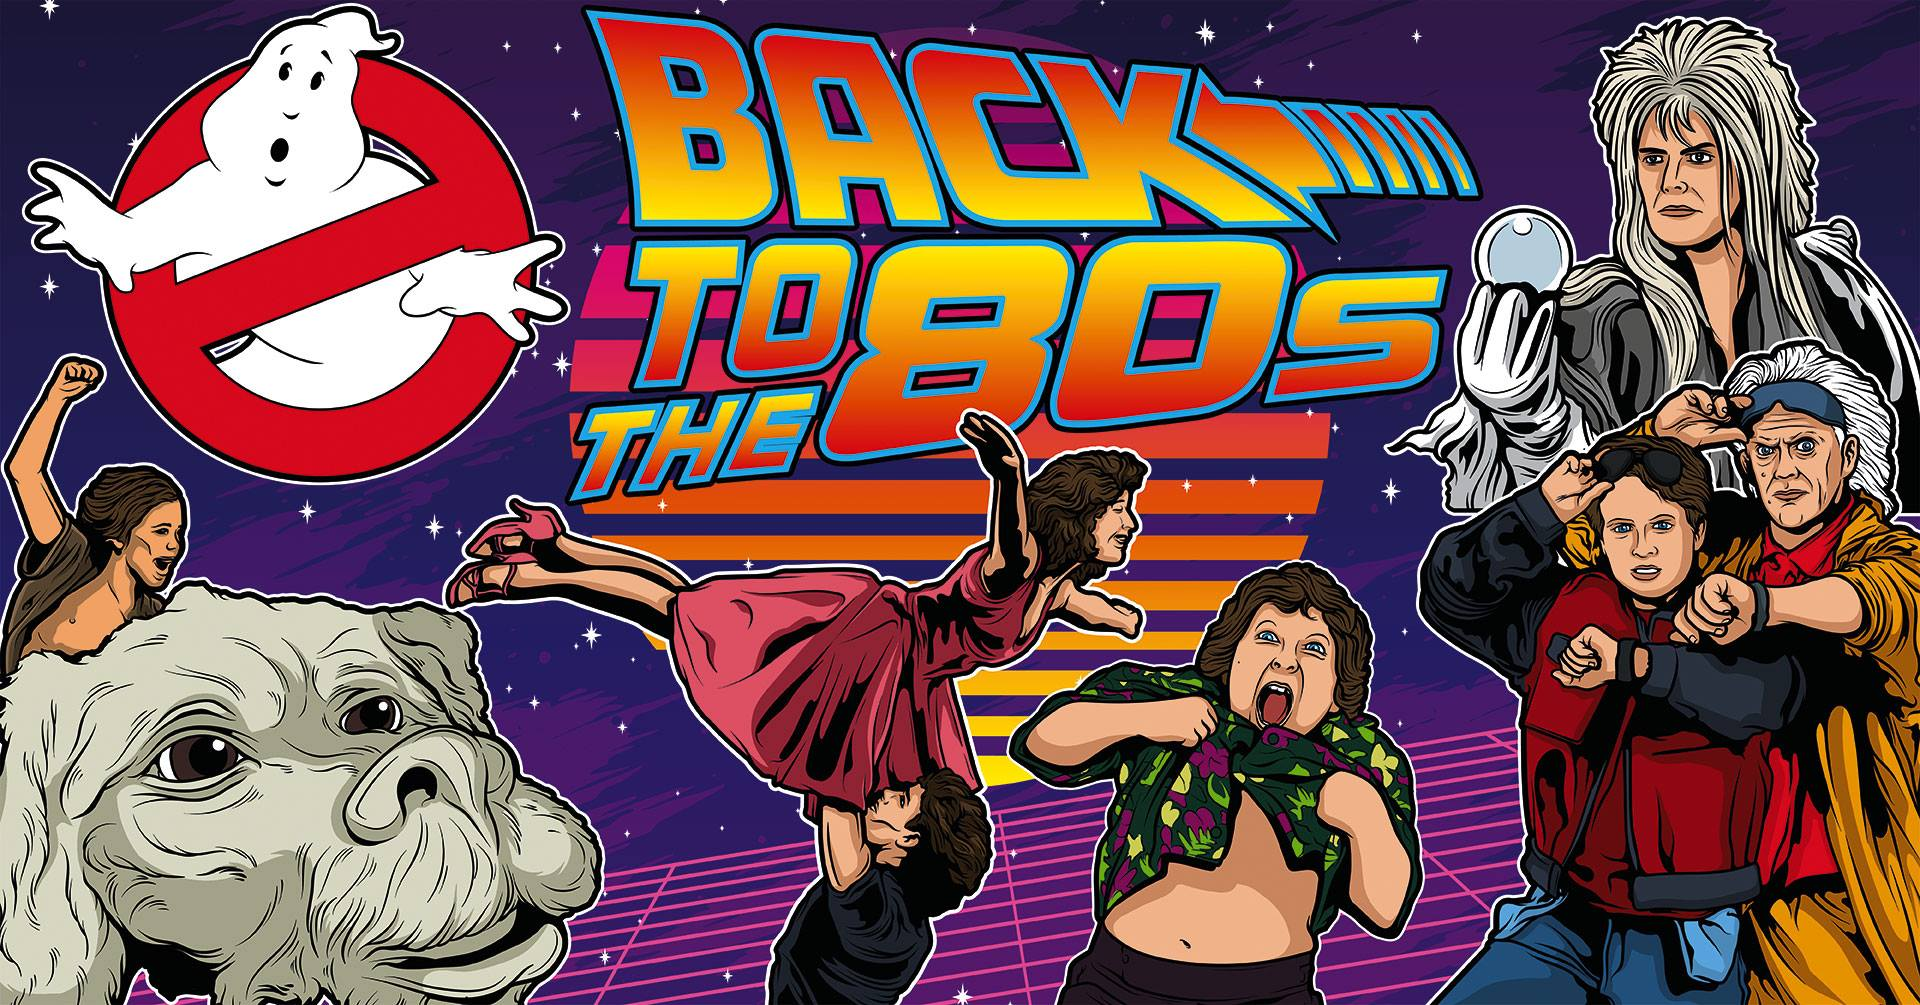 Back To The 80s – Bristol